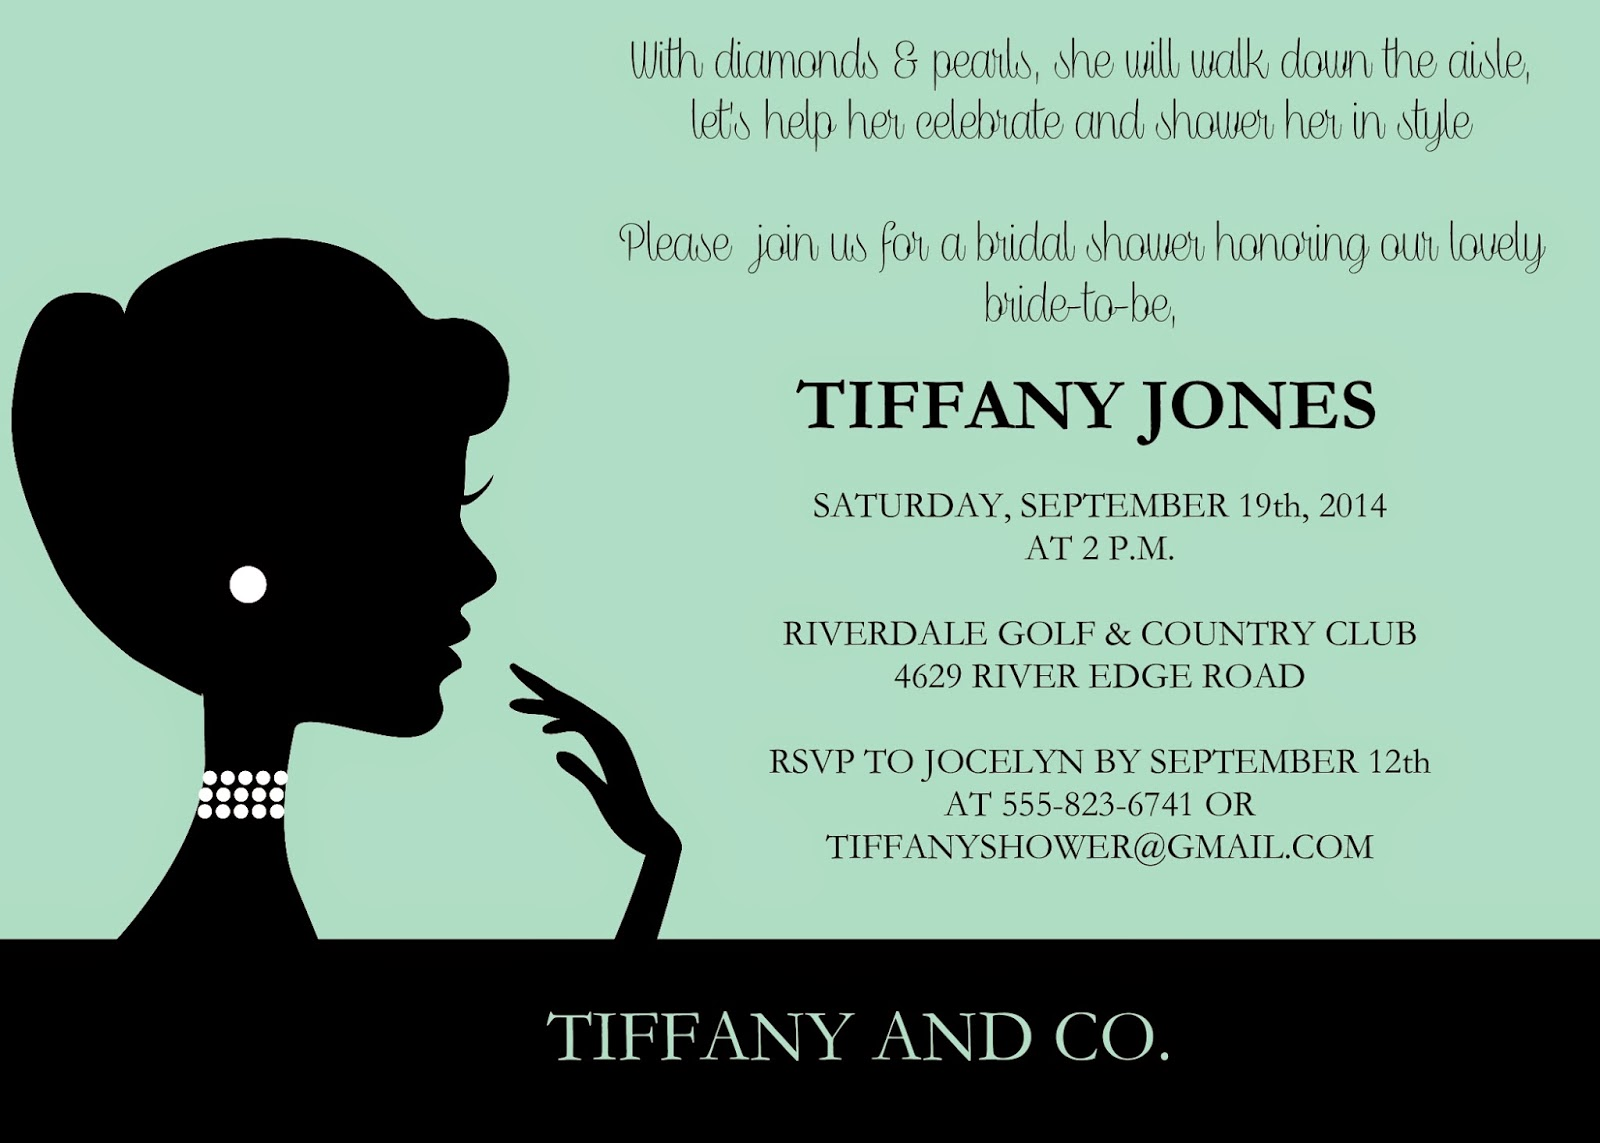 Glass Slipper Designs Tiffany and Co Little Black Dress and – Little Black Dress Bachelorette Party Invitations